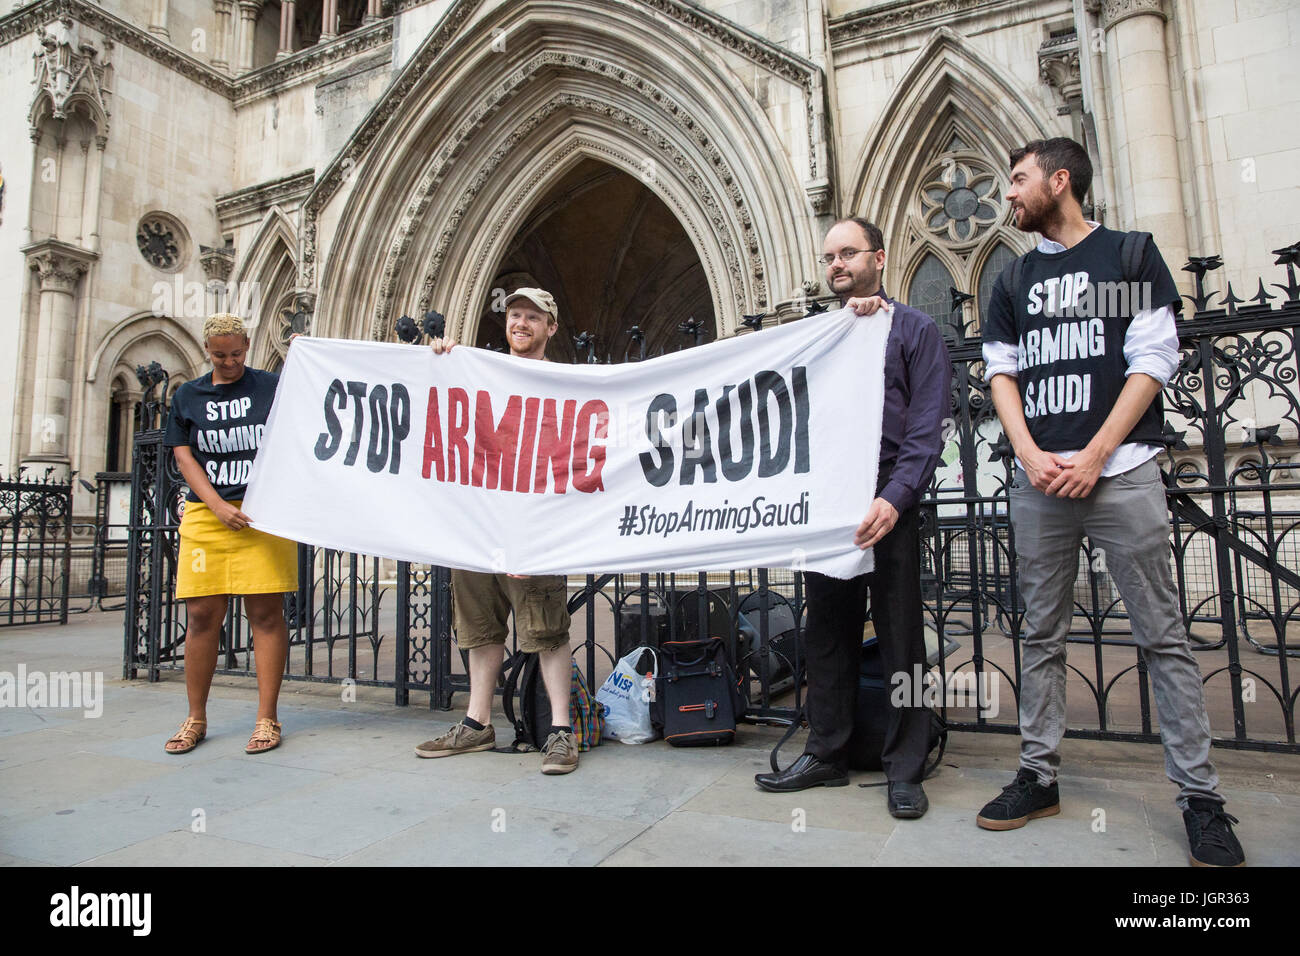 London, UK. 10th July, 2017. Supporters of Campaign Against the Arms Trade (CAAT) stand outside the High Court following - Stock Image